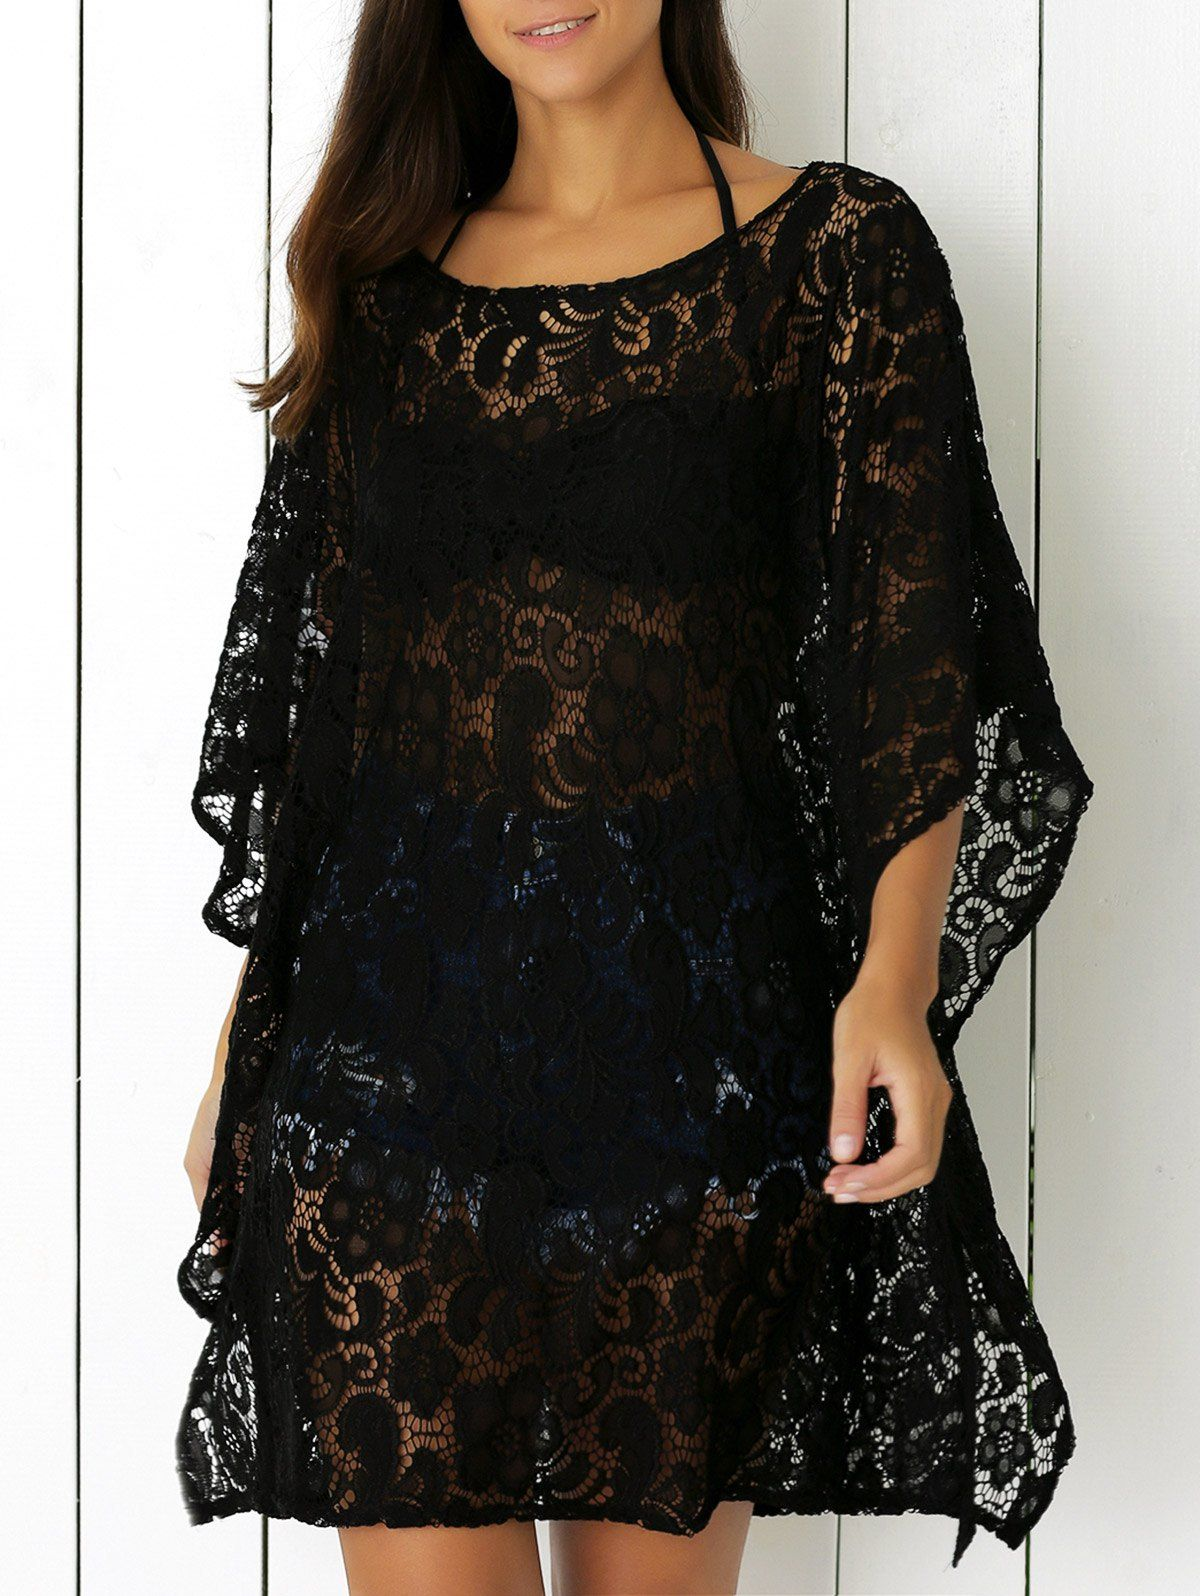 Openwork lace cover up dress fashion sites dress shoes and shoe bag